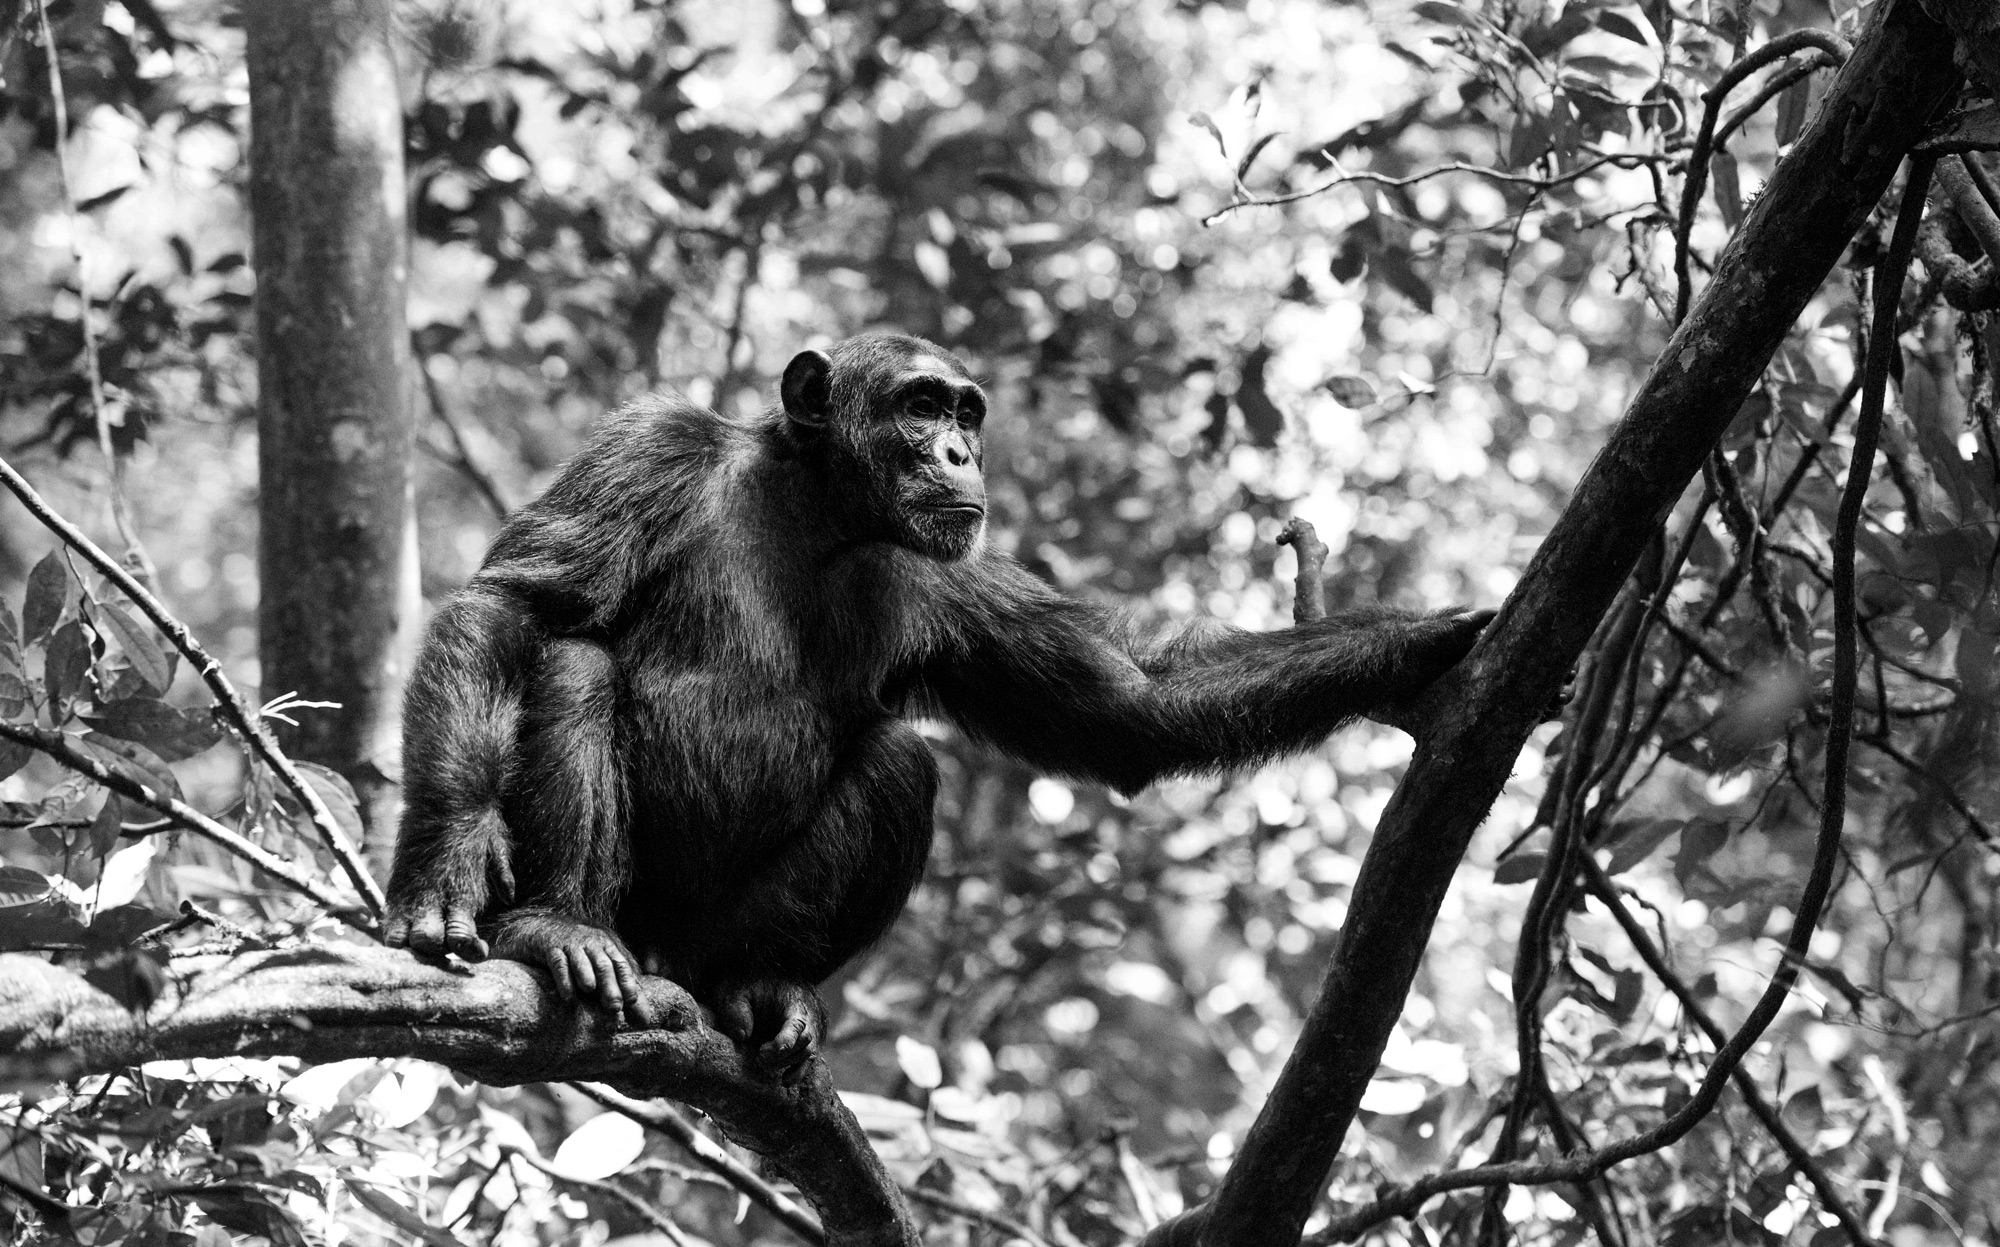 A chimpanzee in Kibale Forest National Park, Uganda © Andrea Galli